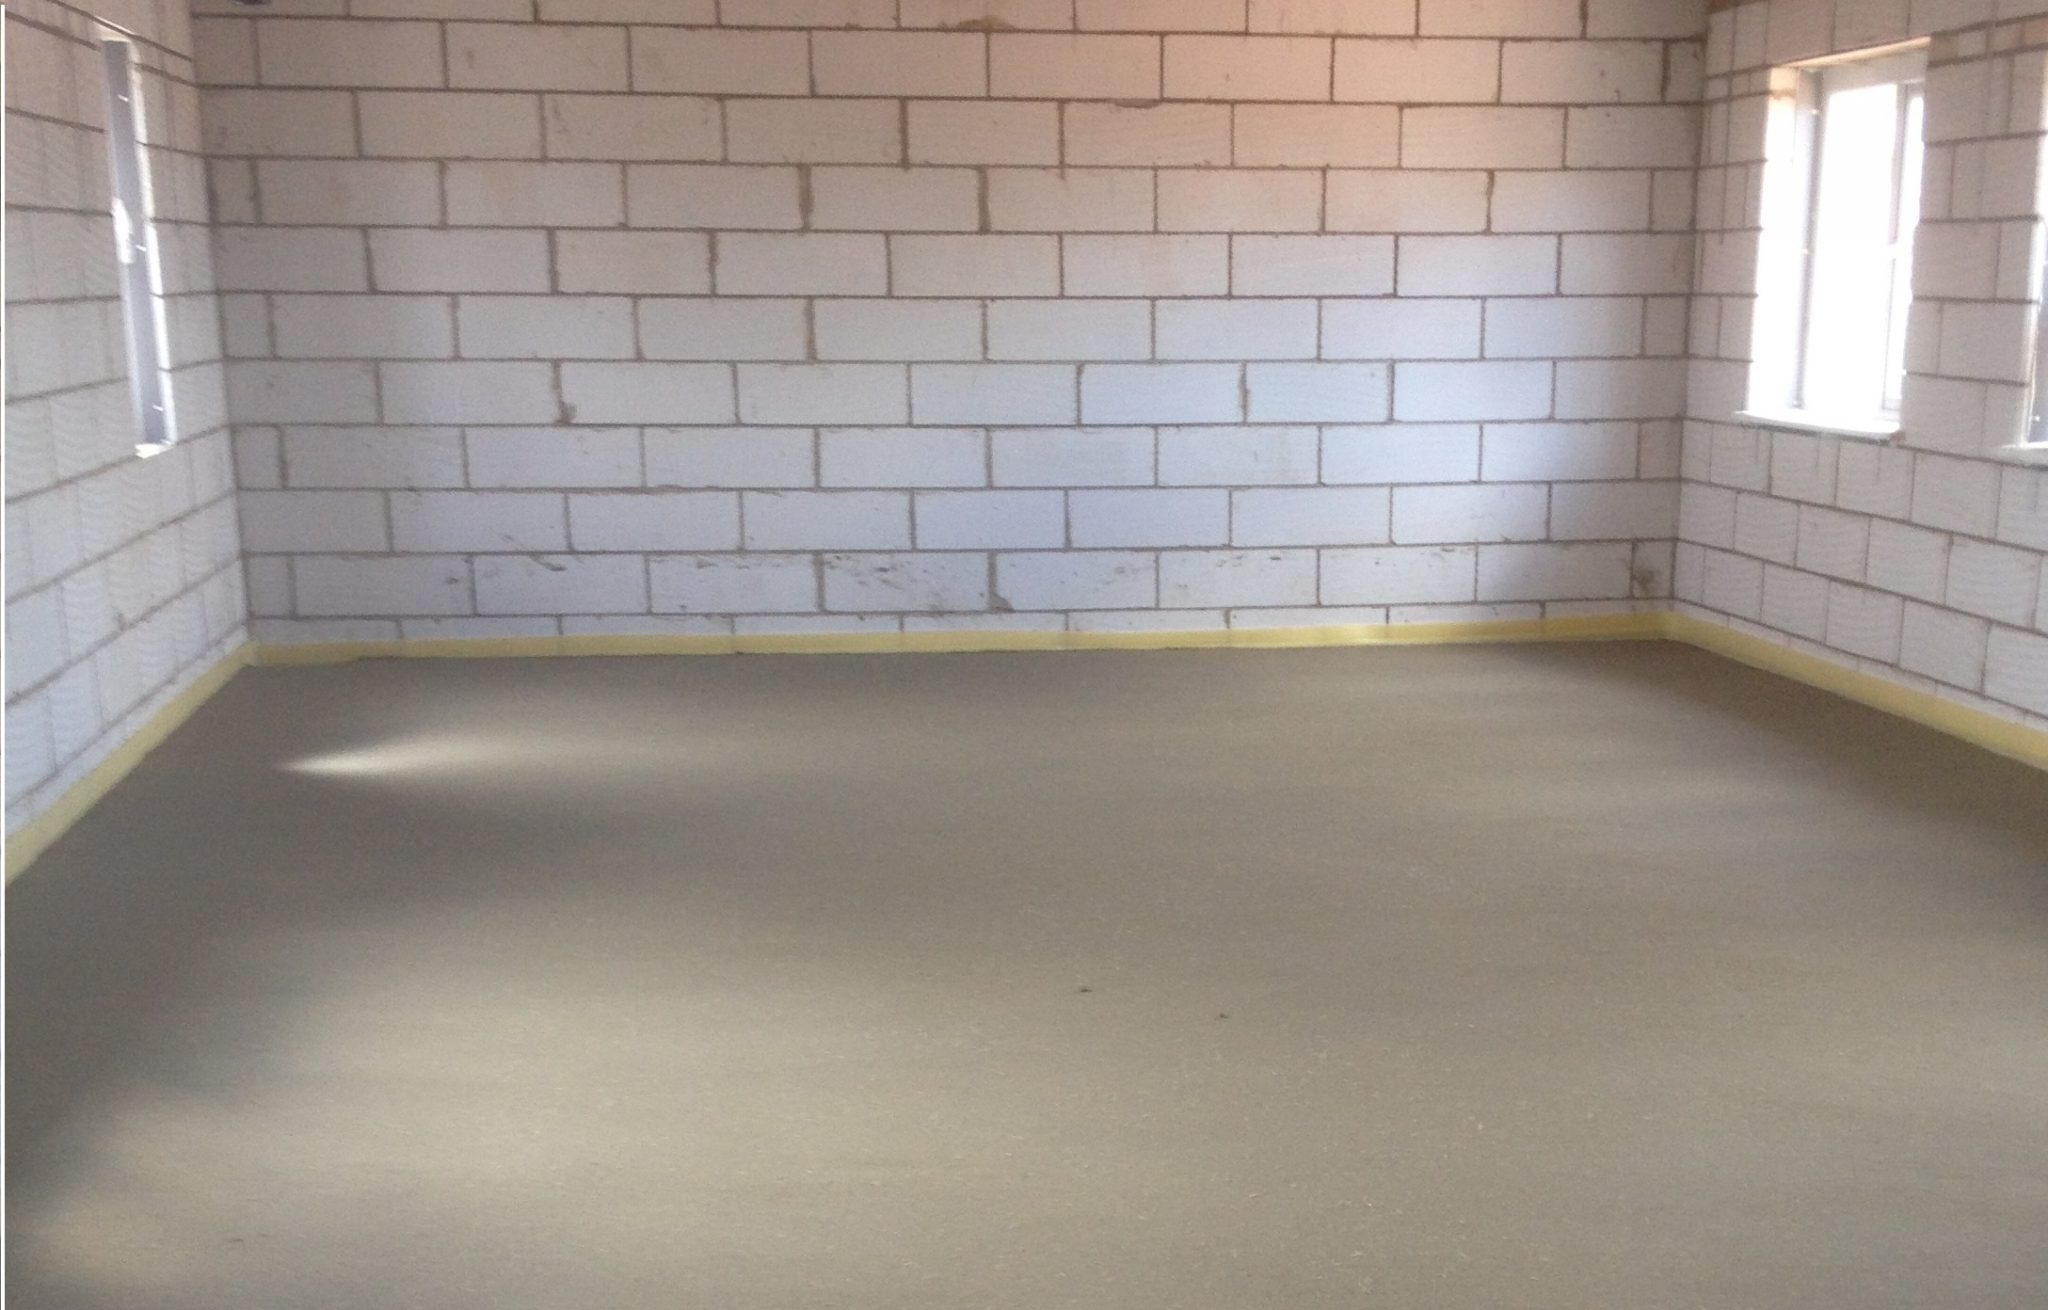 Northants Internal Floor Screed Concrete Kettering Wellingborough Milton Keynes Corby Bedford